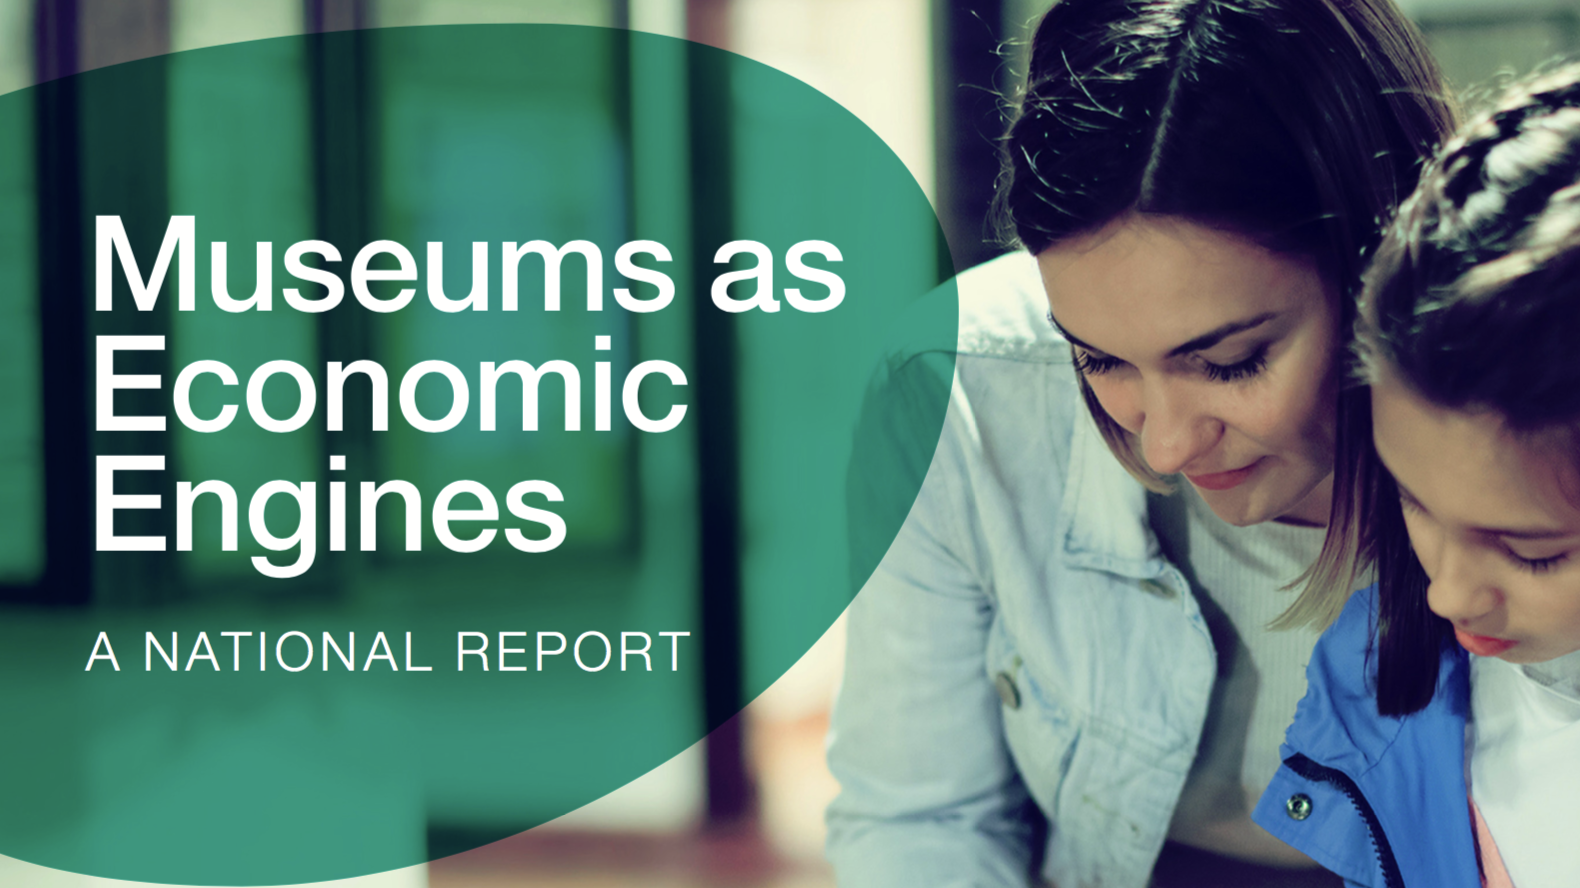 Cover Image of the Museums as economic engines report. Shows a woman with a younger girls looking down together as an unseen object